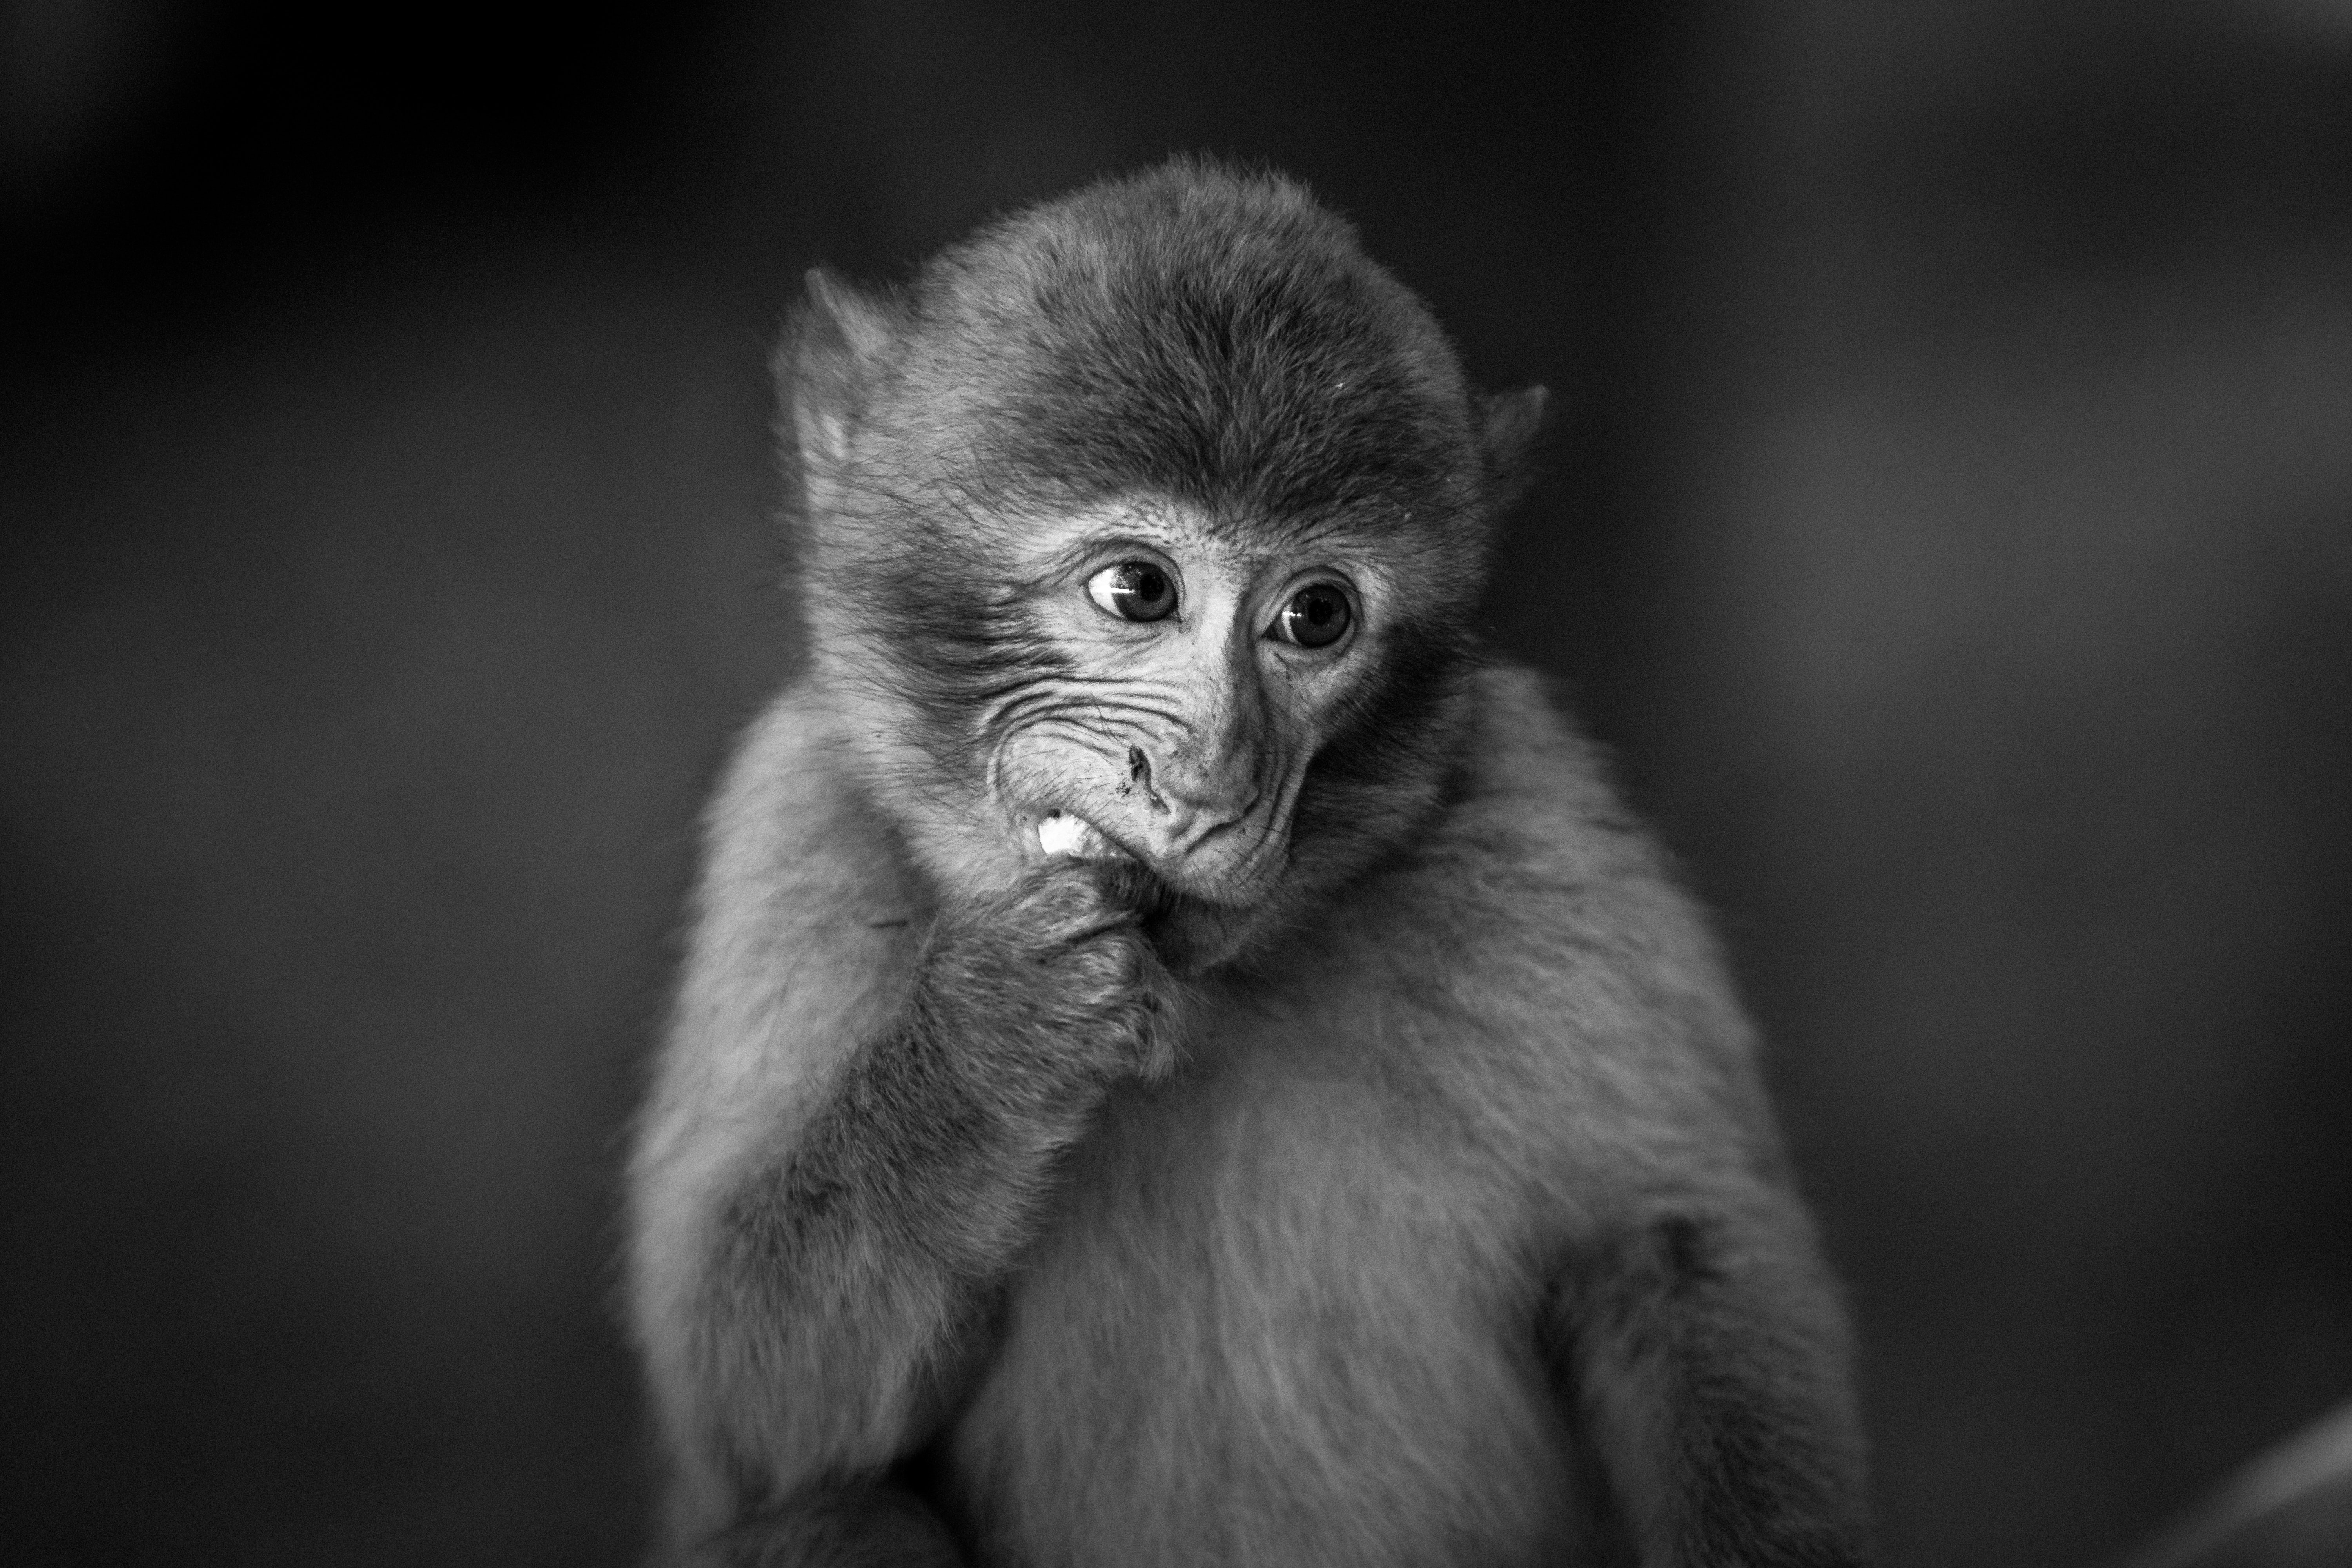 shallow focus photography of black monkey